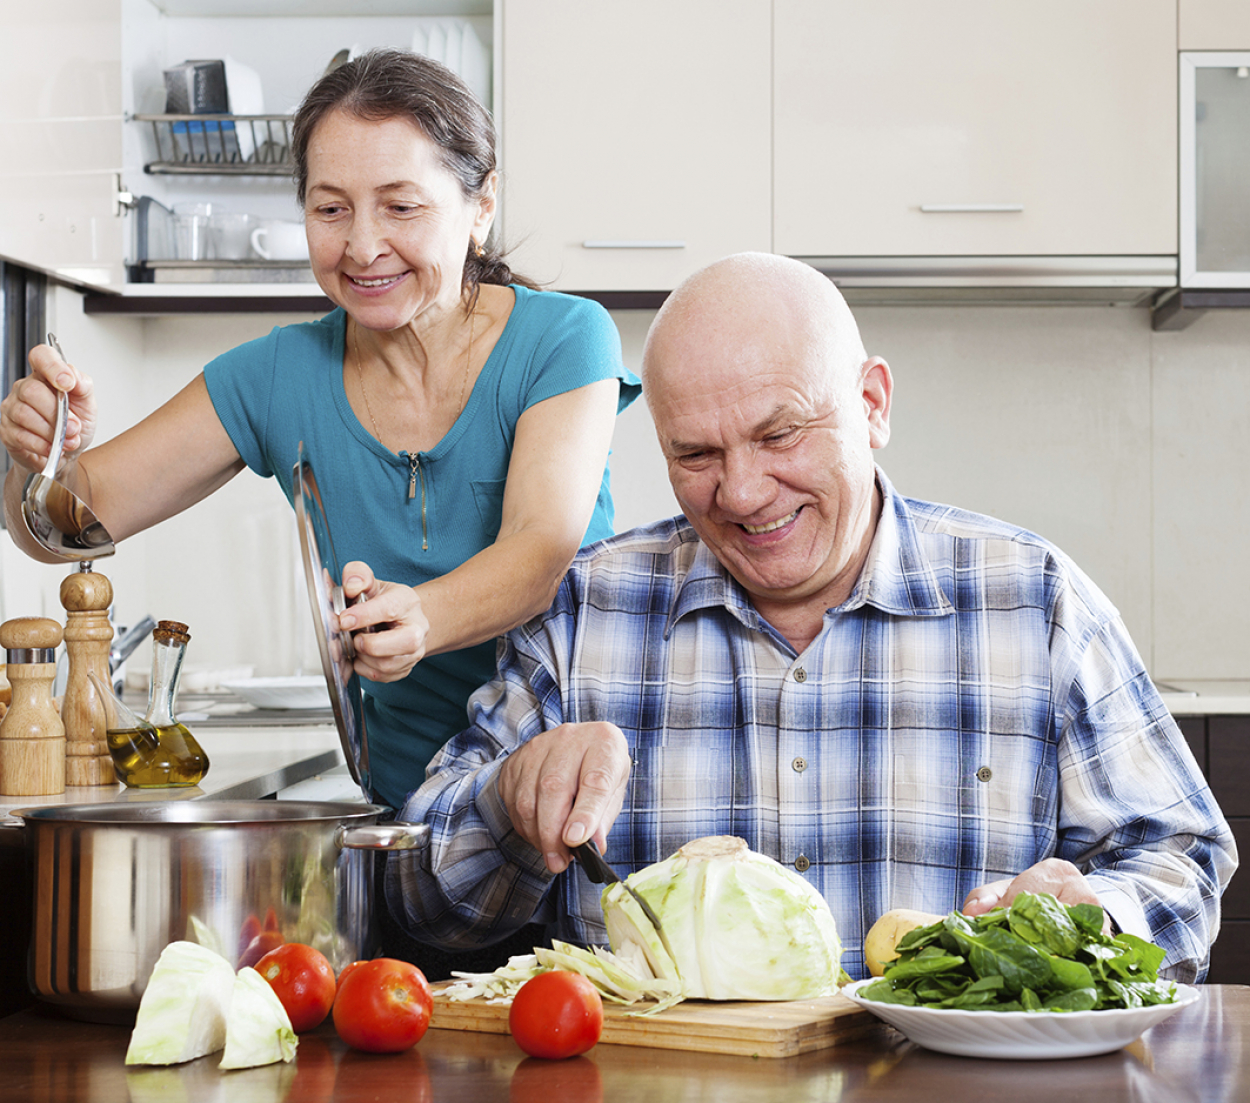 Resthaven Paradise & Eastern Community Services can provide Level 1, 2, 3 and 4 Home Care Packages